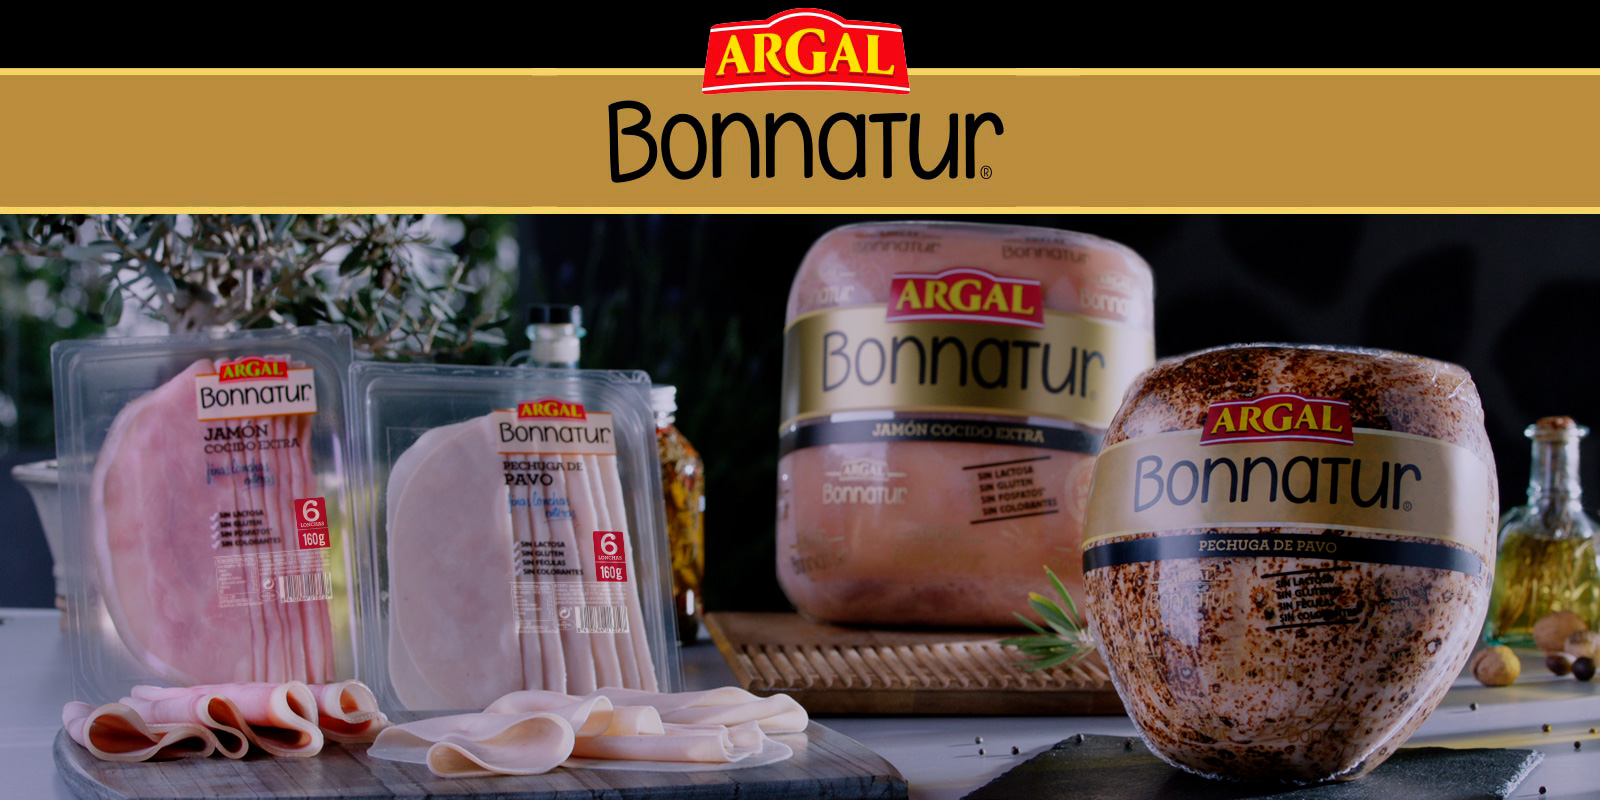 1600x800-HD-Sticky-Bonnatur-Argal